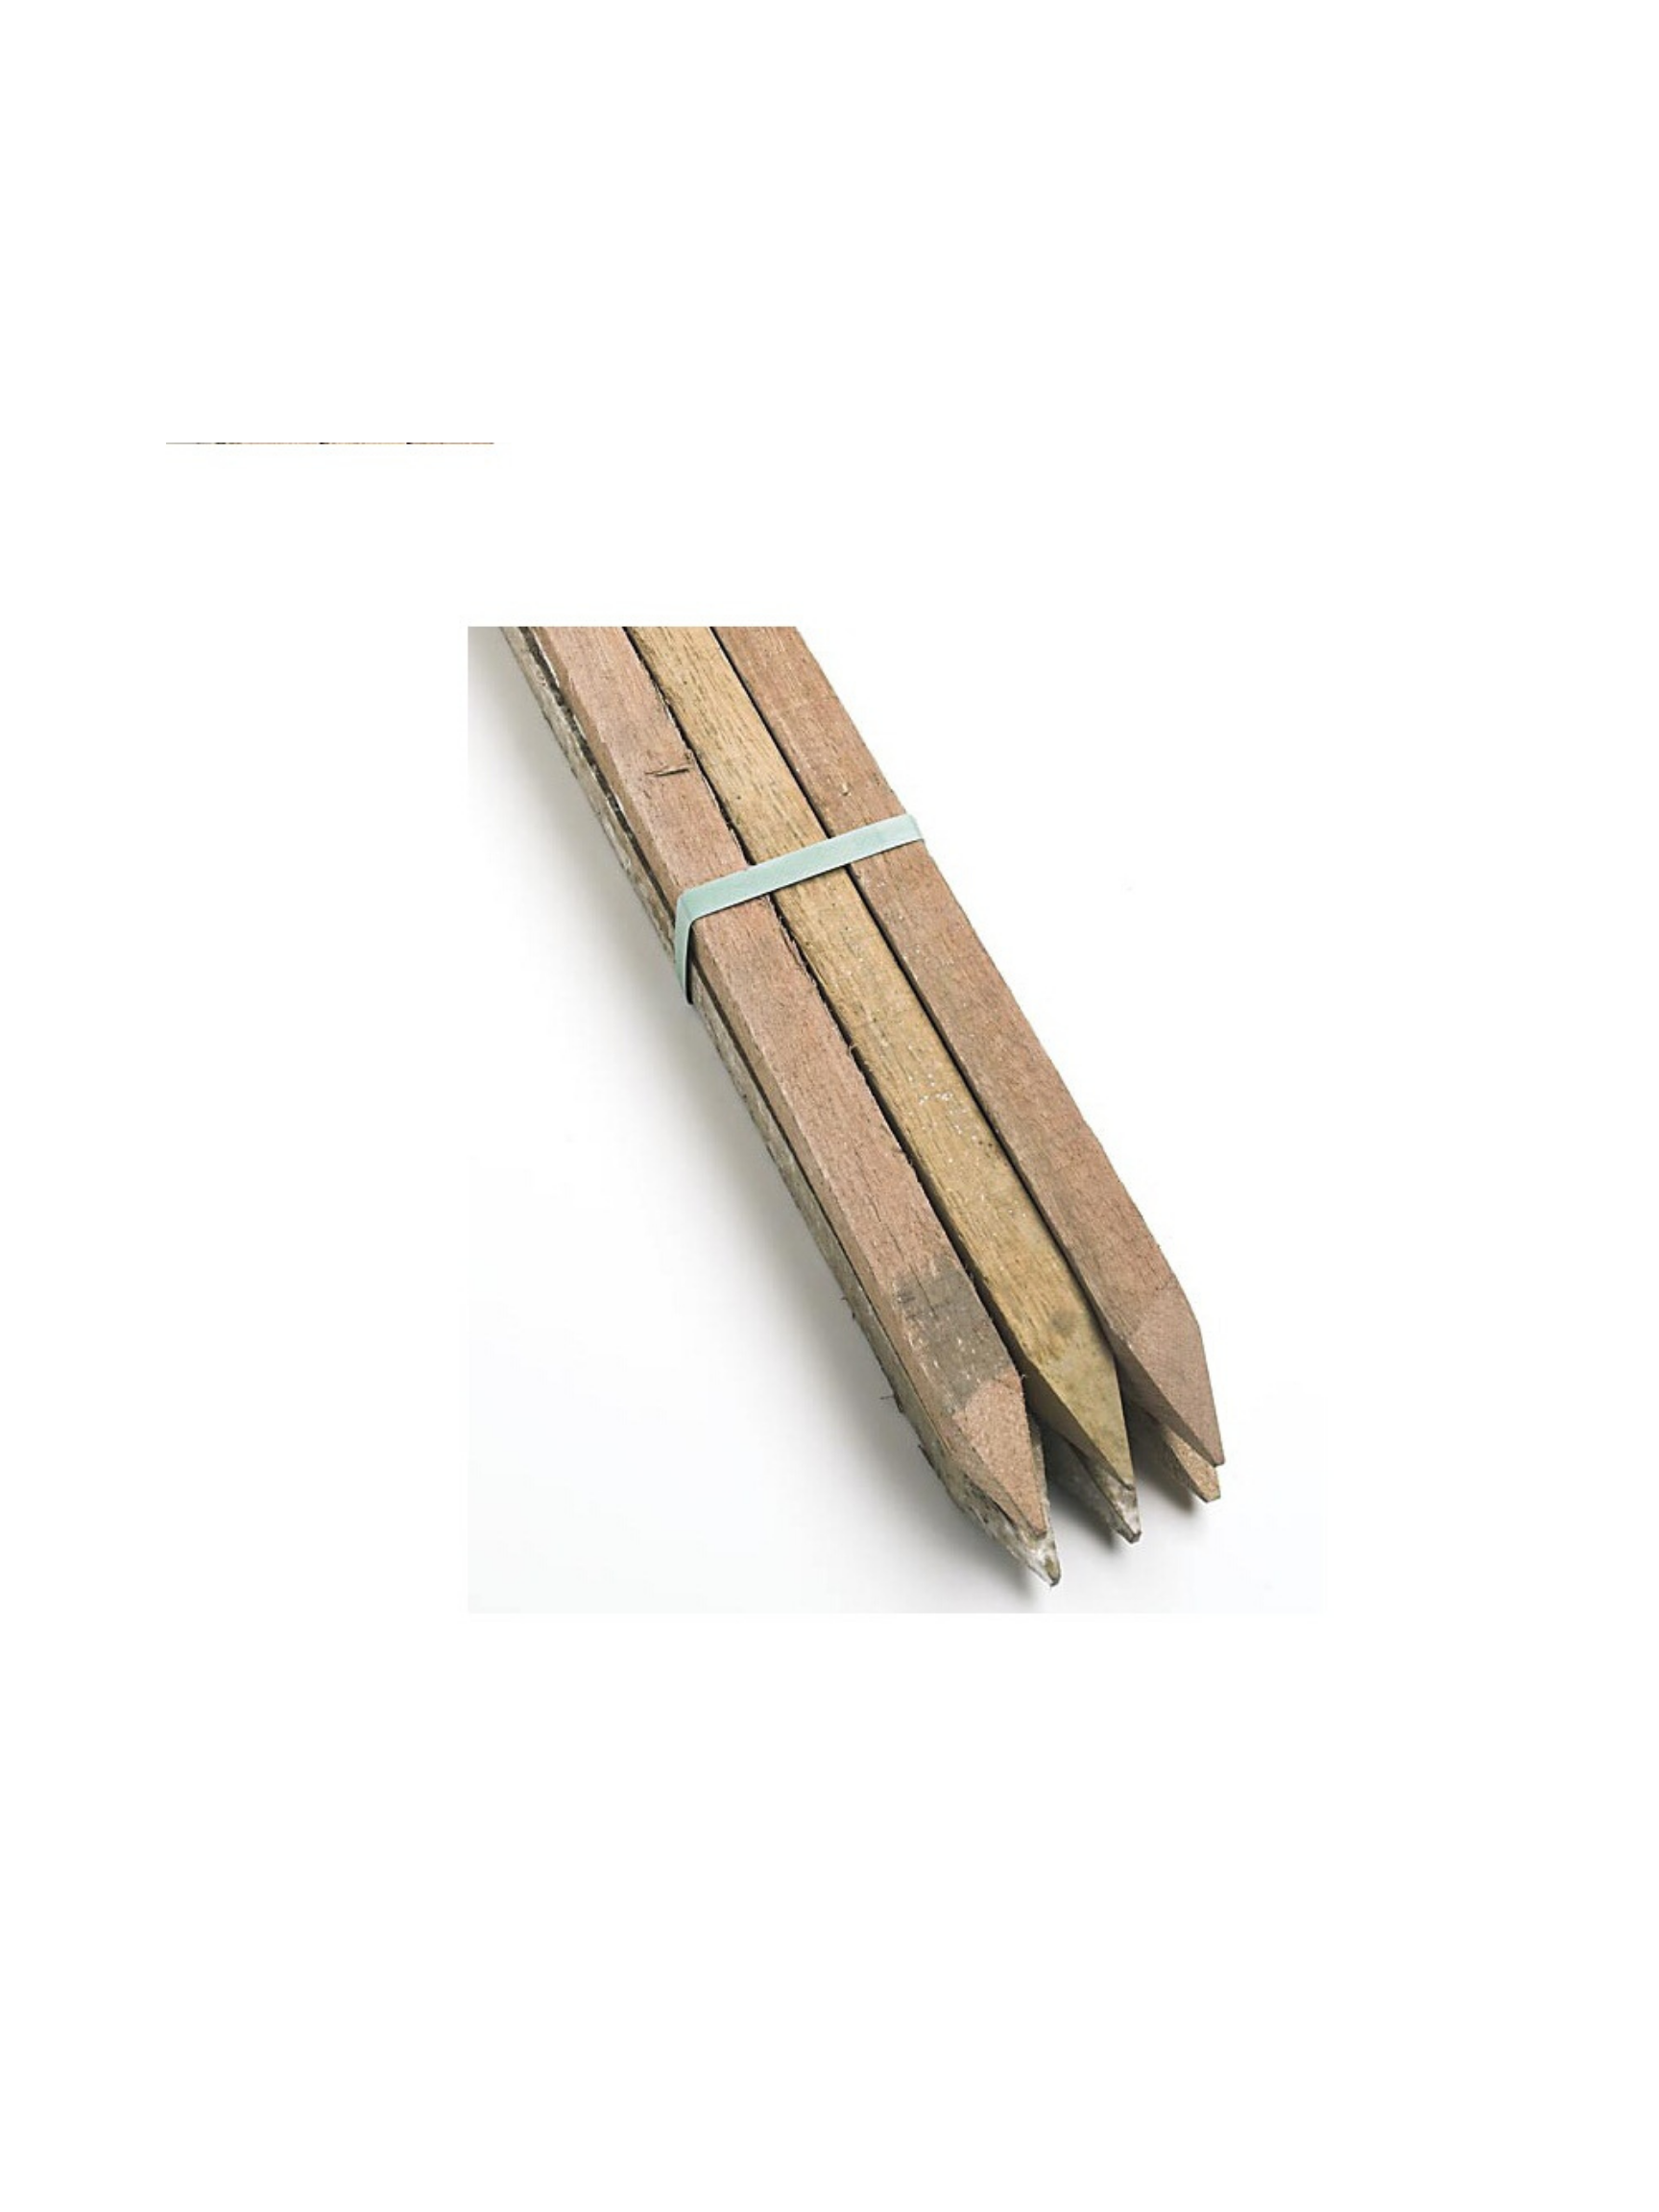 Timber Stakes 25 x 25 x 1500mm (Per 10)